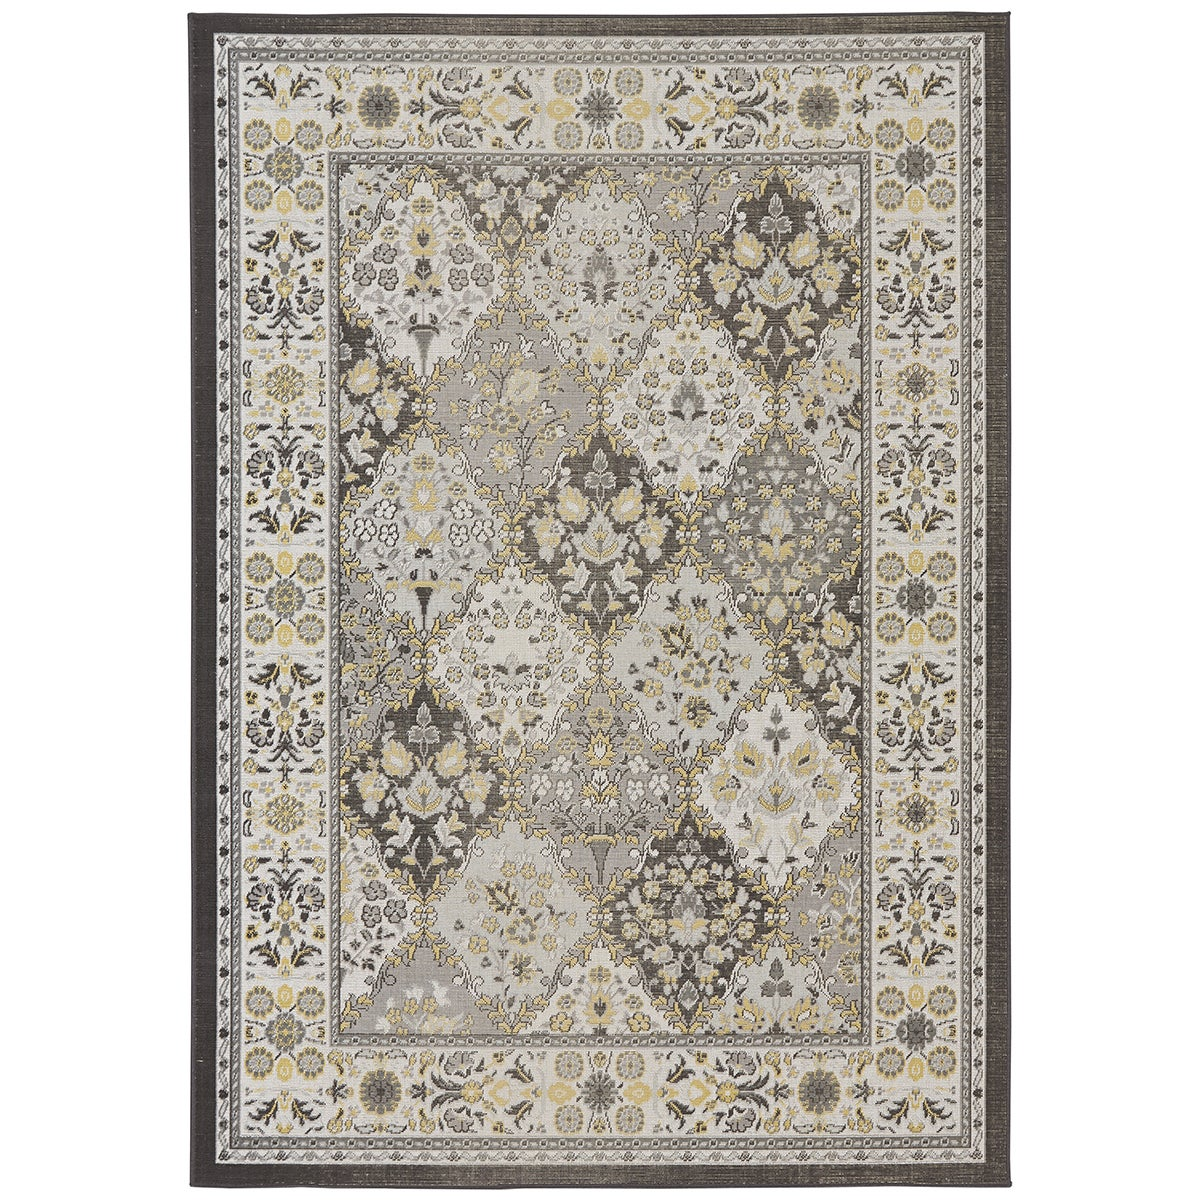 Grand Bazaar Zero Pile Seymour Area Rug in Lemon (10' x 1...